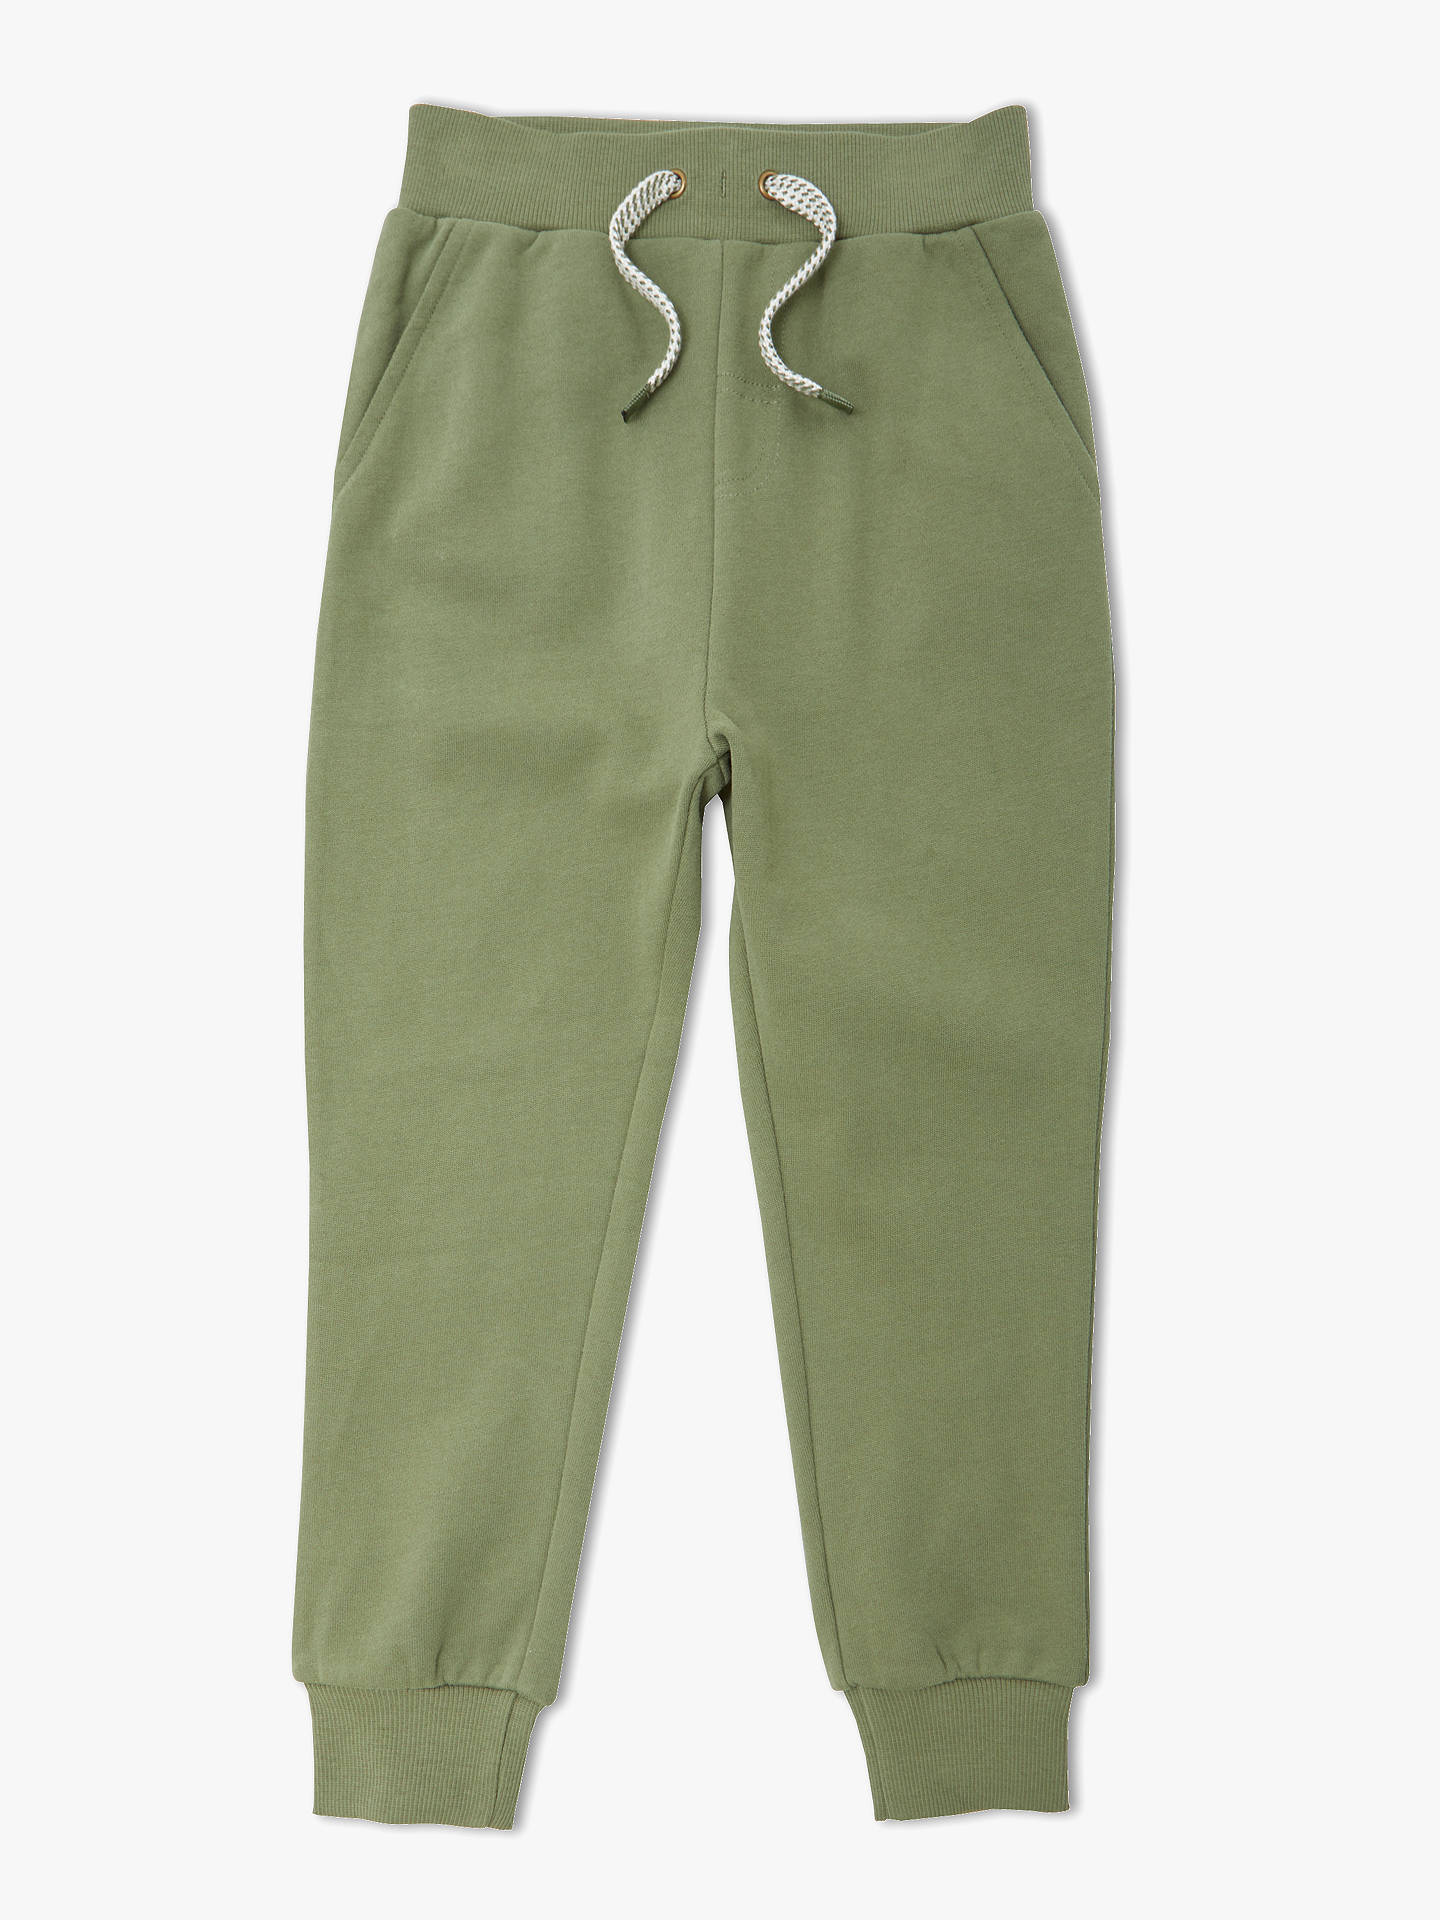 ae4fc172be6050 Buy John Lewis & Partners Boys' Fashion Joggers, Olive, 2 years Online at  ...